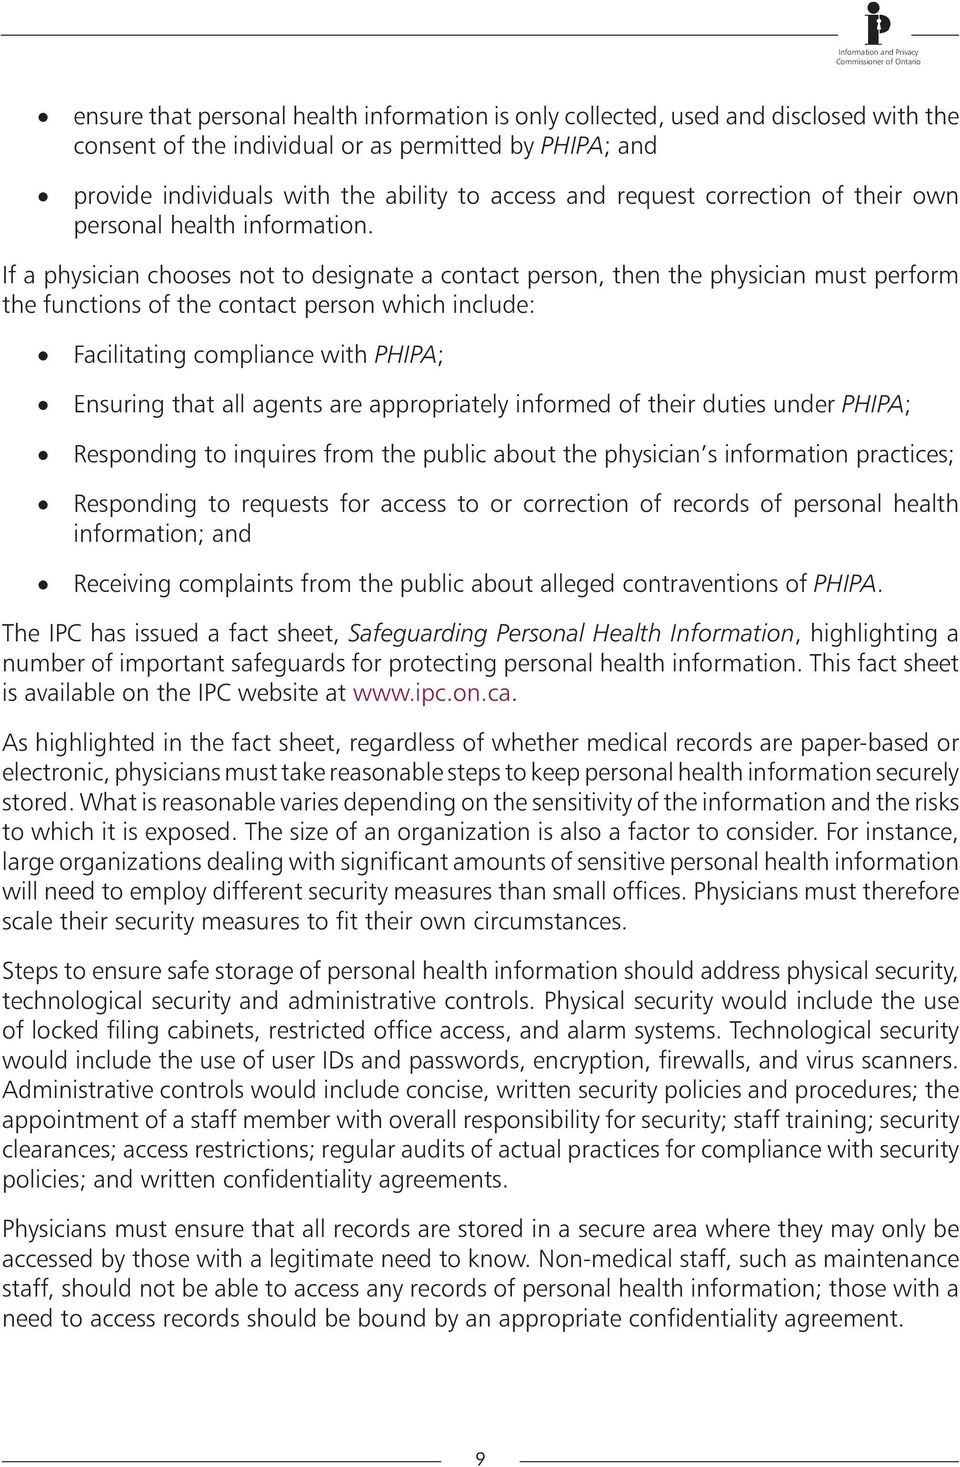 If a physician chooses not to designate a contact person, then the physician must perform the functions of the contact person which include: Facilitating compliance with PHIPA; Ensuring that all